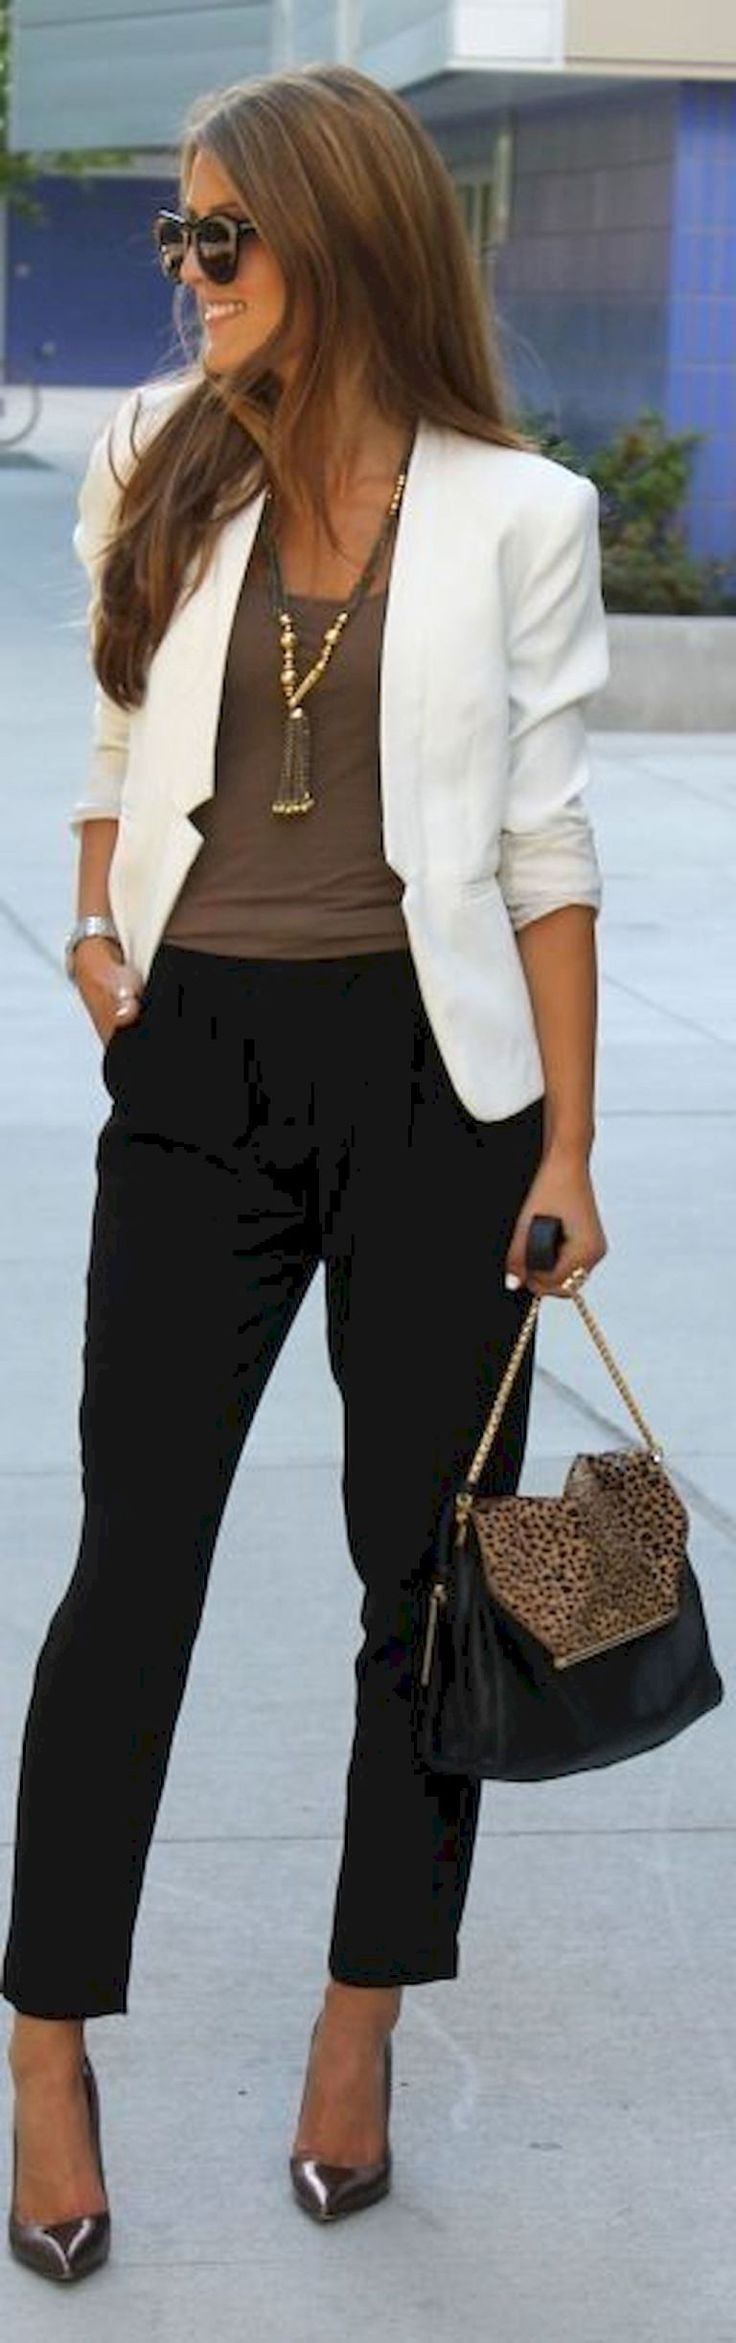 best dressez images on pinterest outfits shades and all